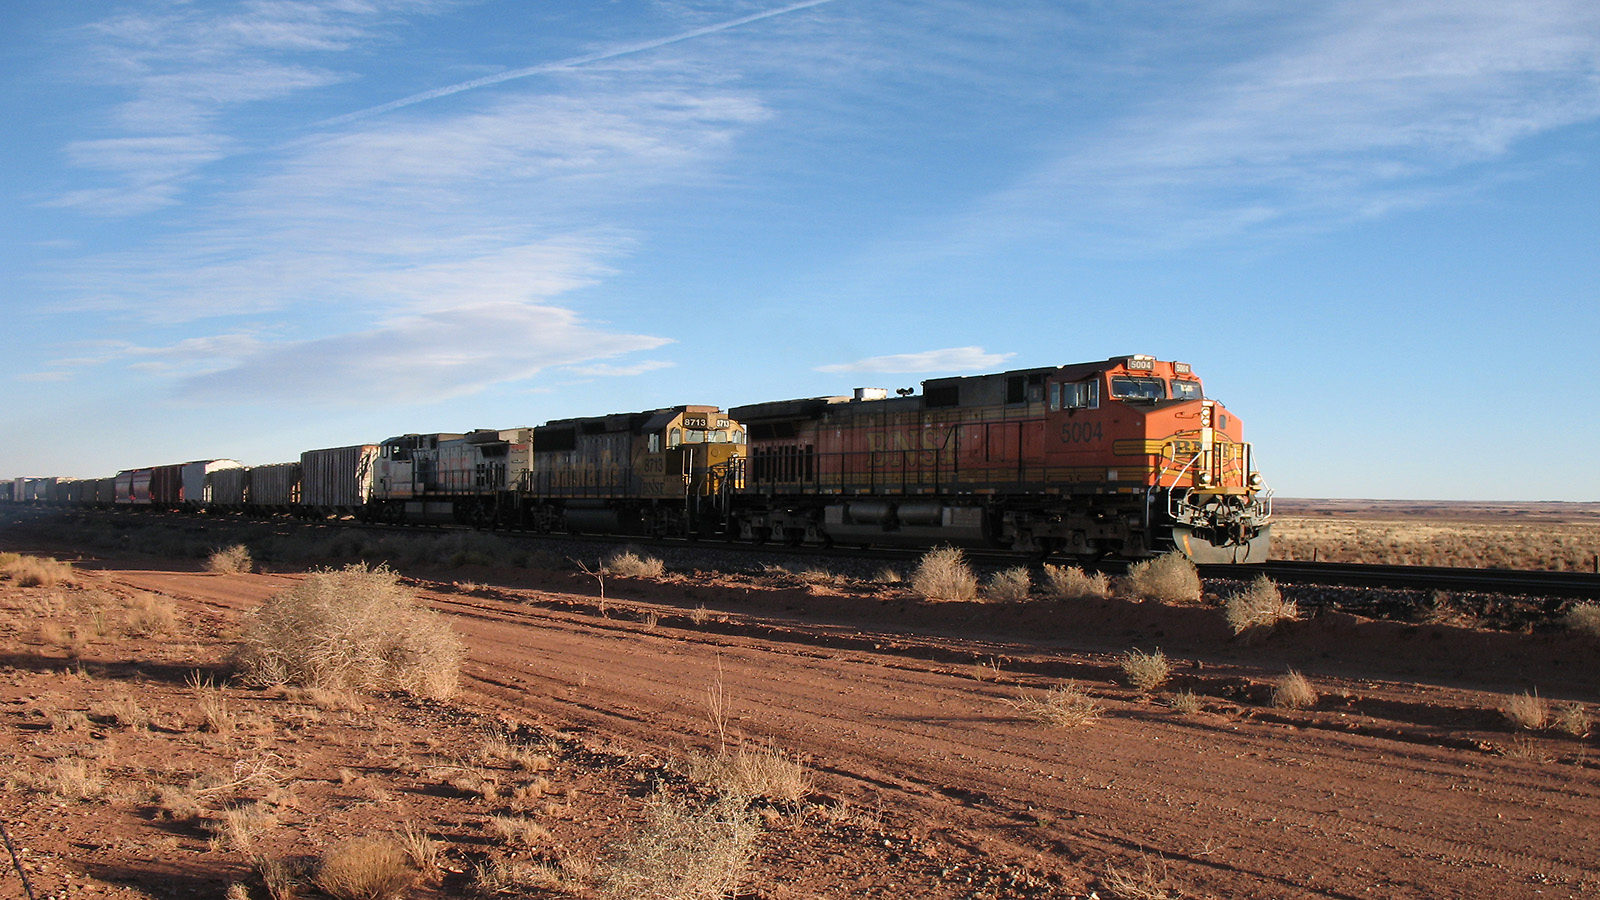 Photo of a train traveling along tracks out in the desert